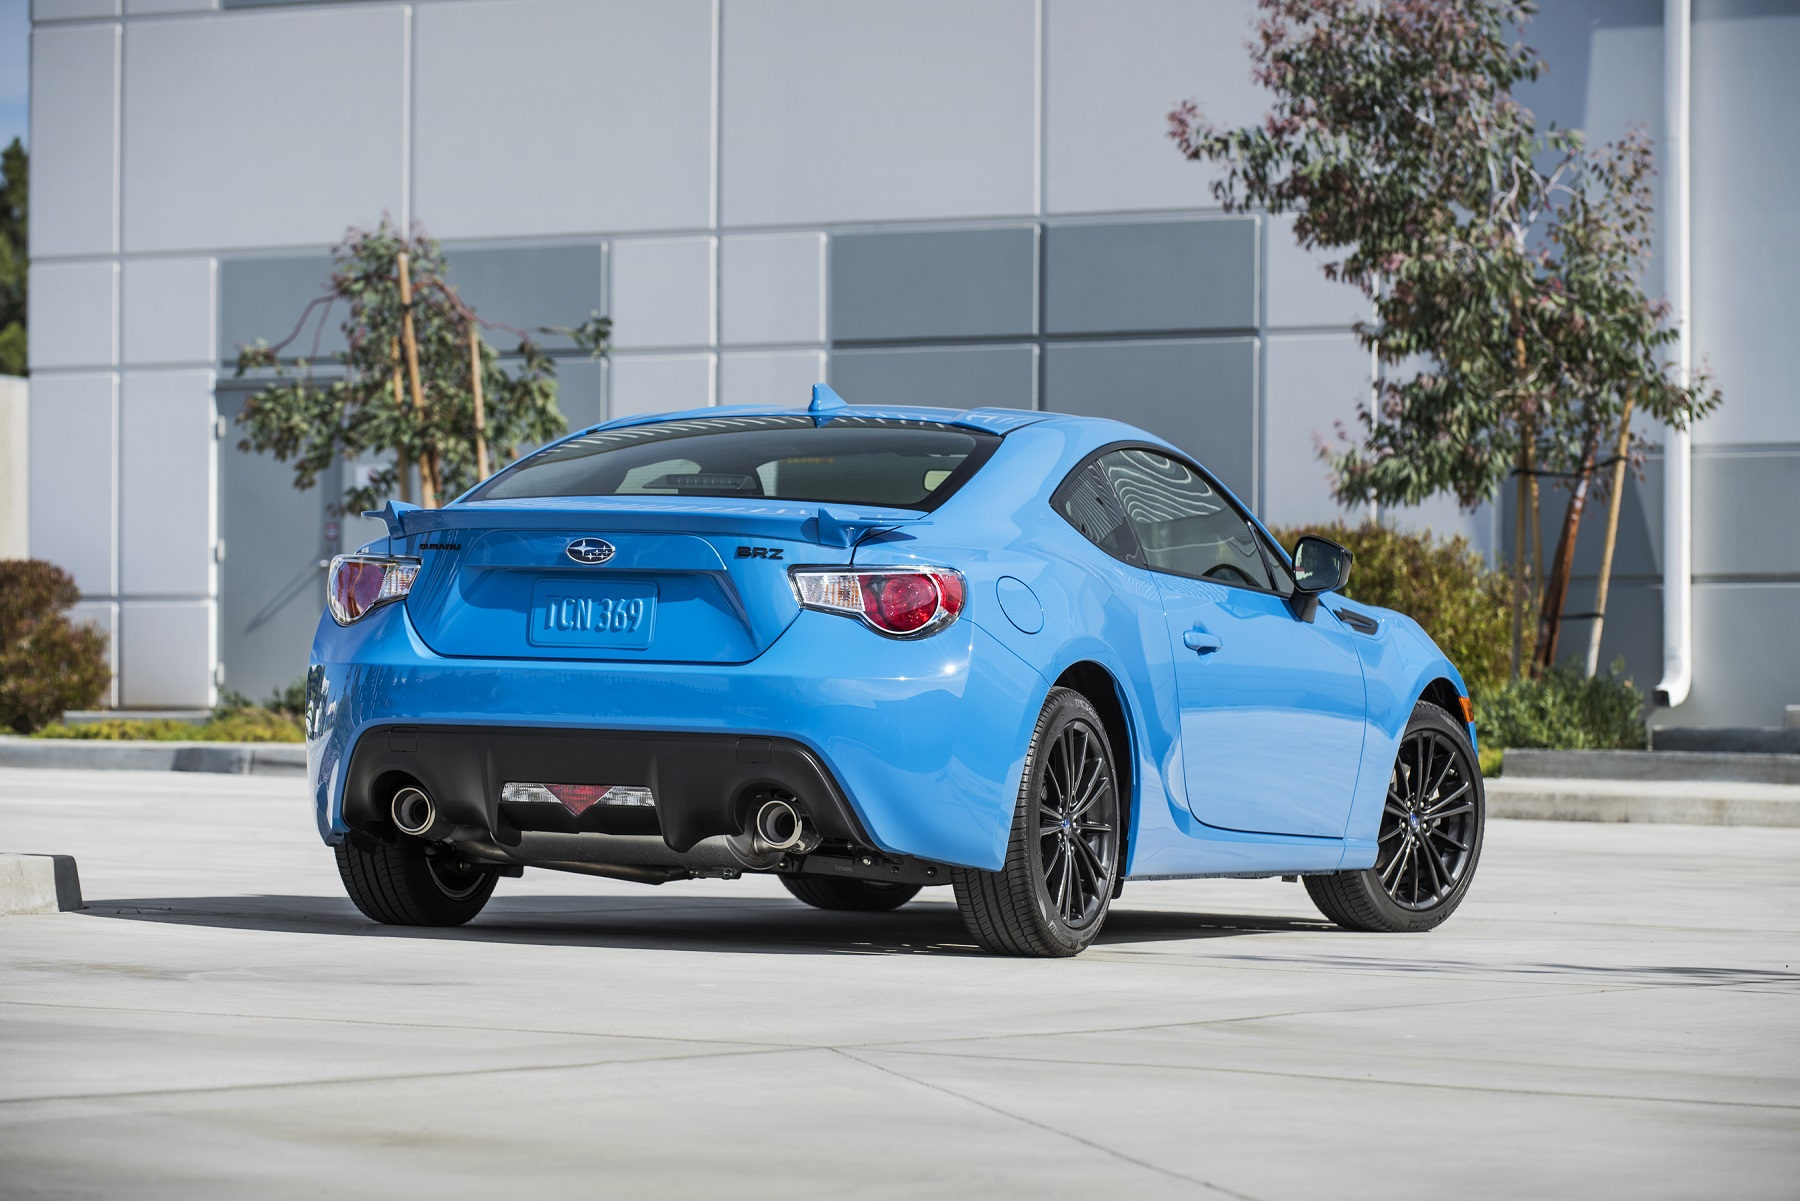 brz subaru 39 s rear wheel drive sports coupe bonus wheels groovecar. Black Bedroom Furniture Sets. Home Design Ideas